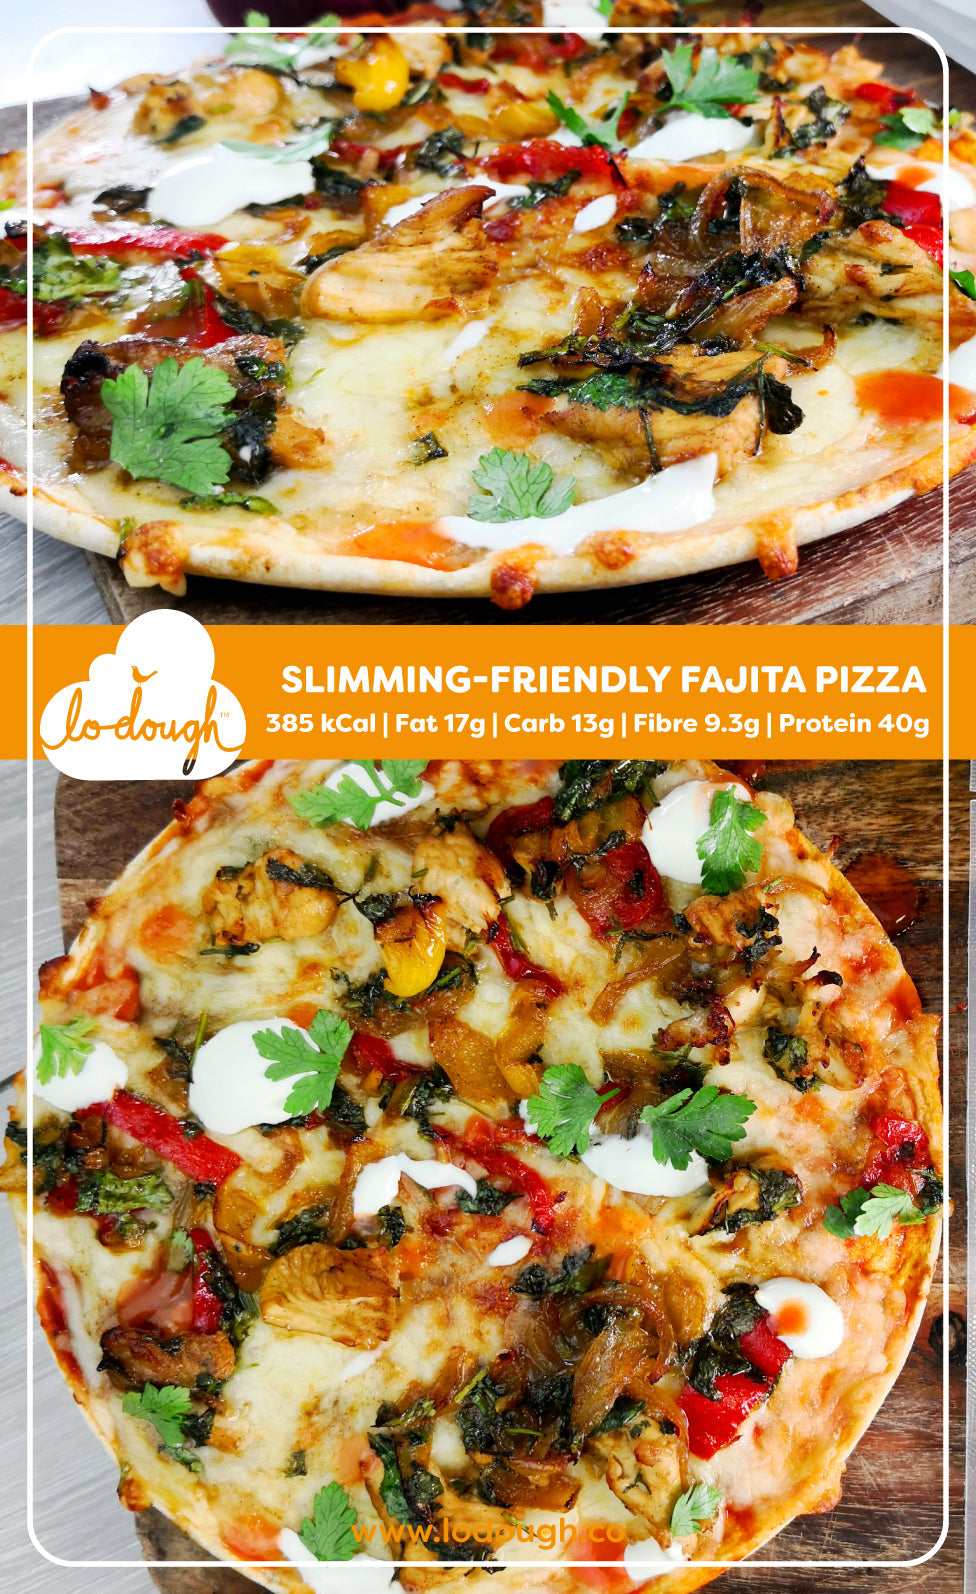 Slimming-Friendly Fajita Pizza